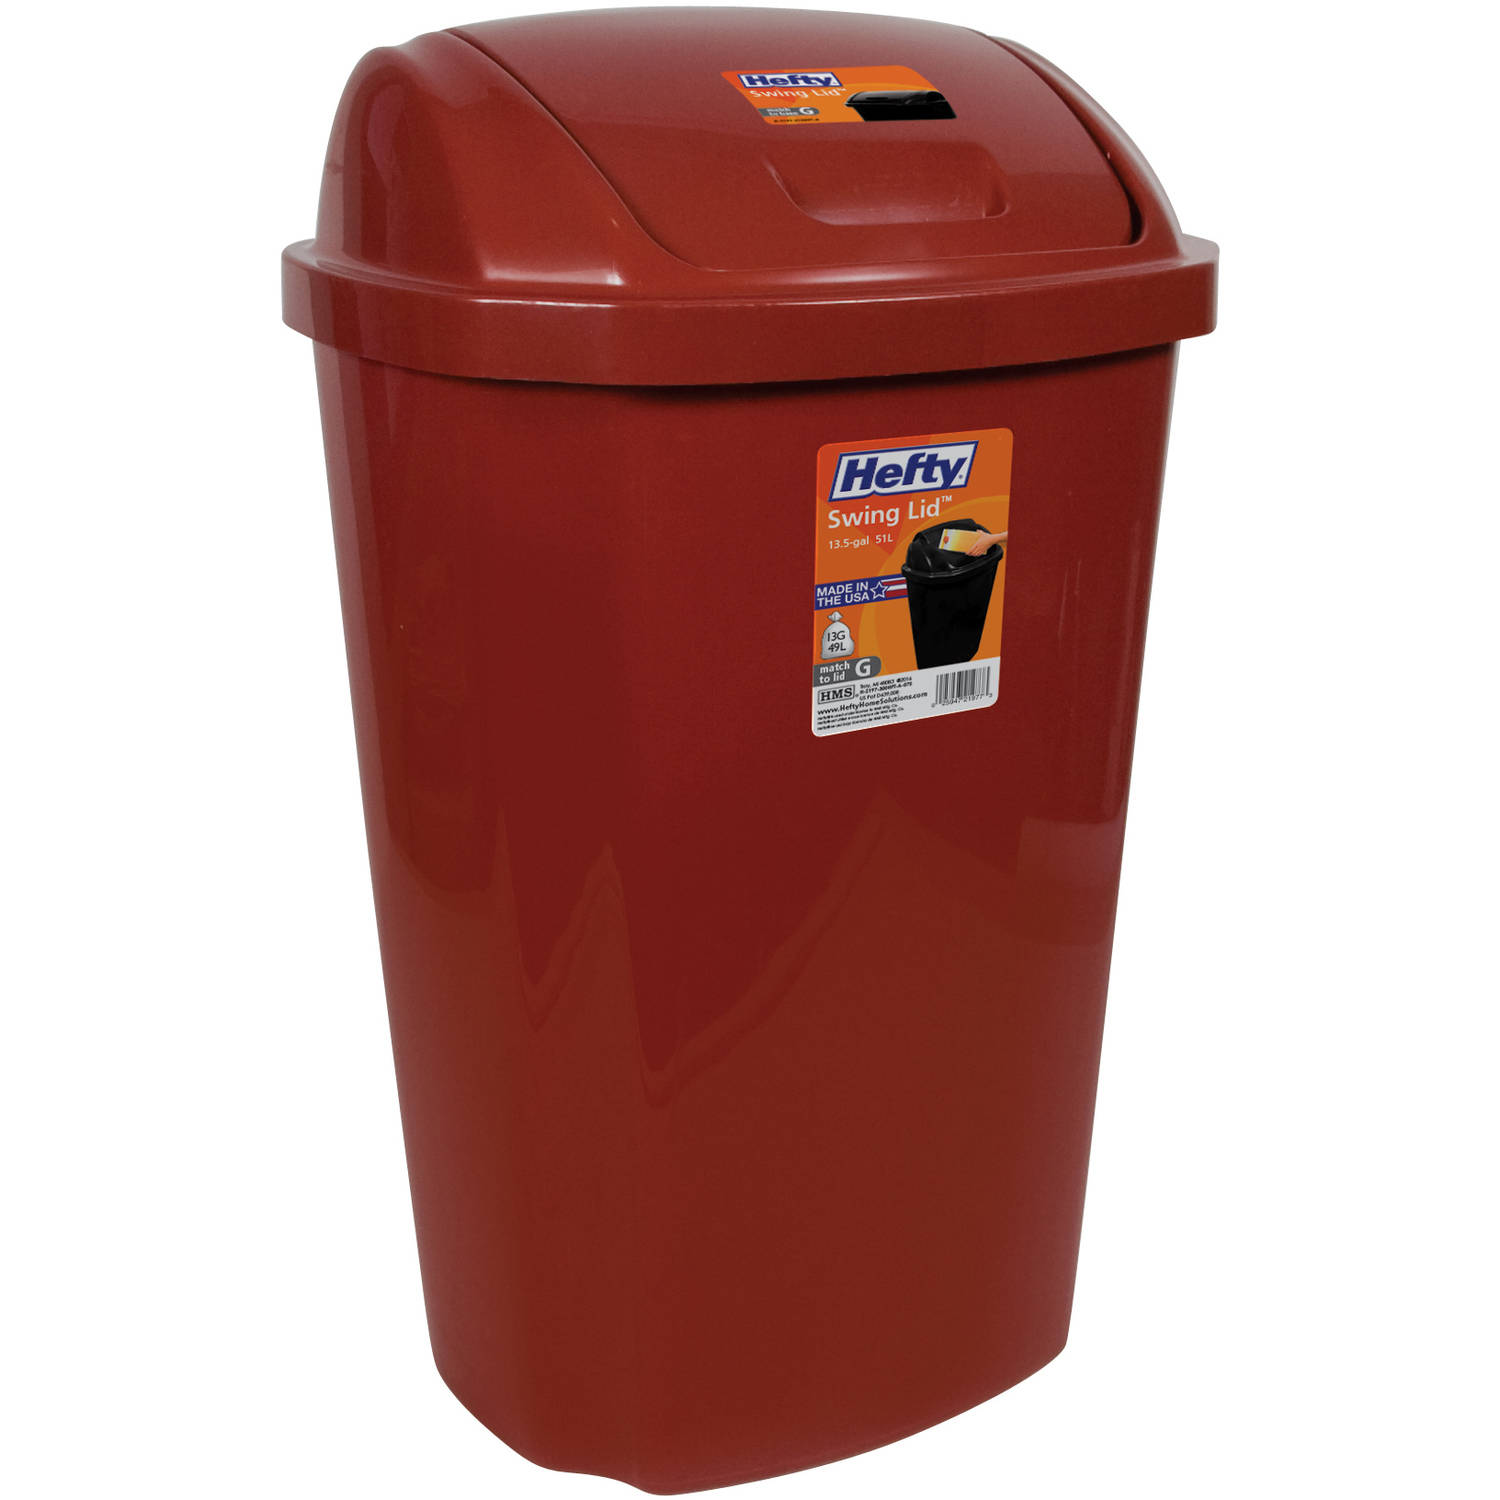 Kitchen Trash Can 13.5 Gallon Hefty Swing Lid Red Waste Basket Garbage Bin  NEW